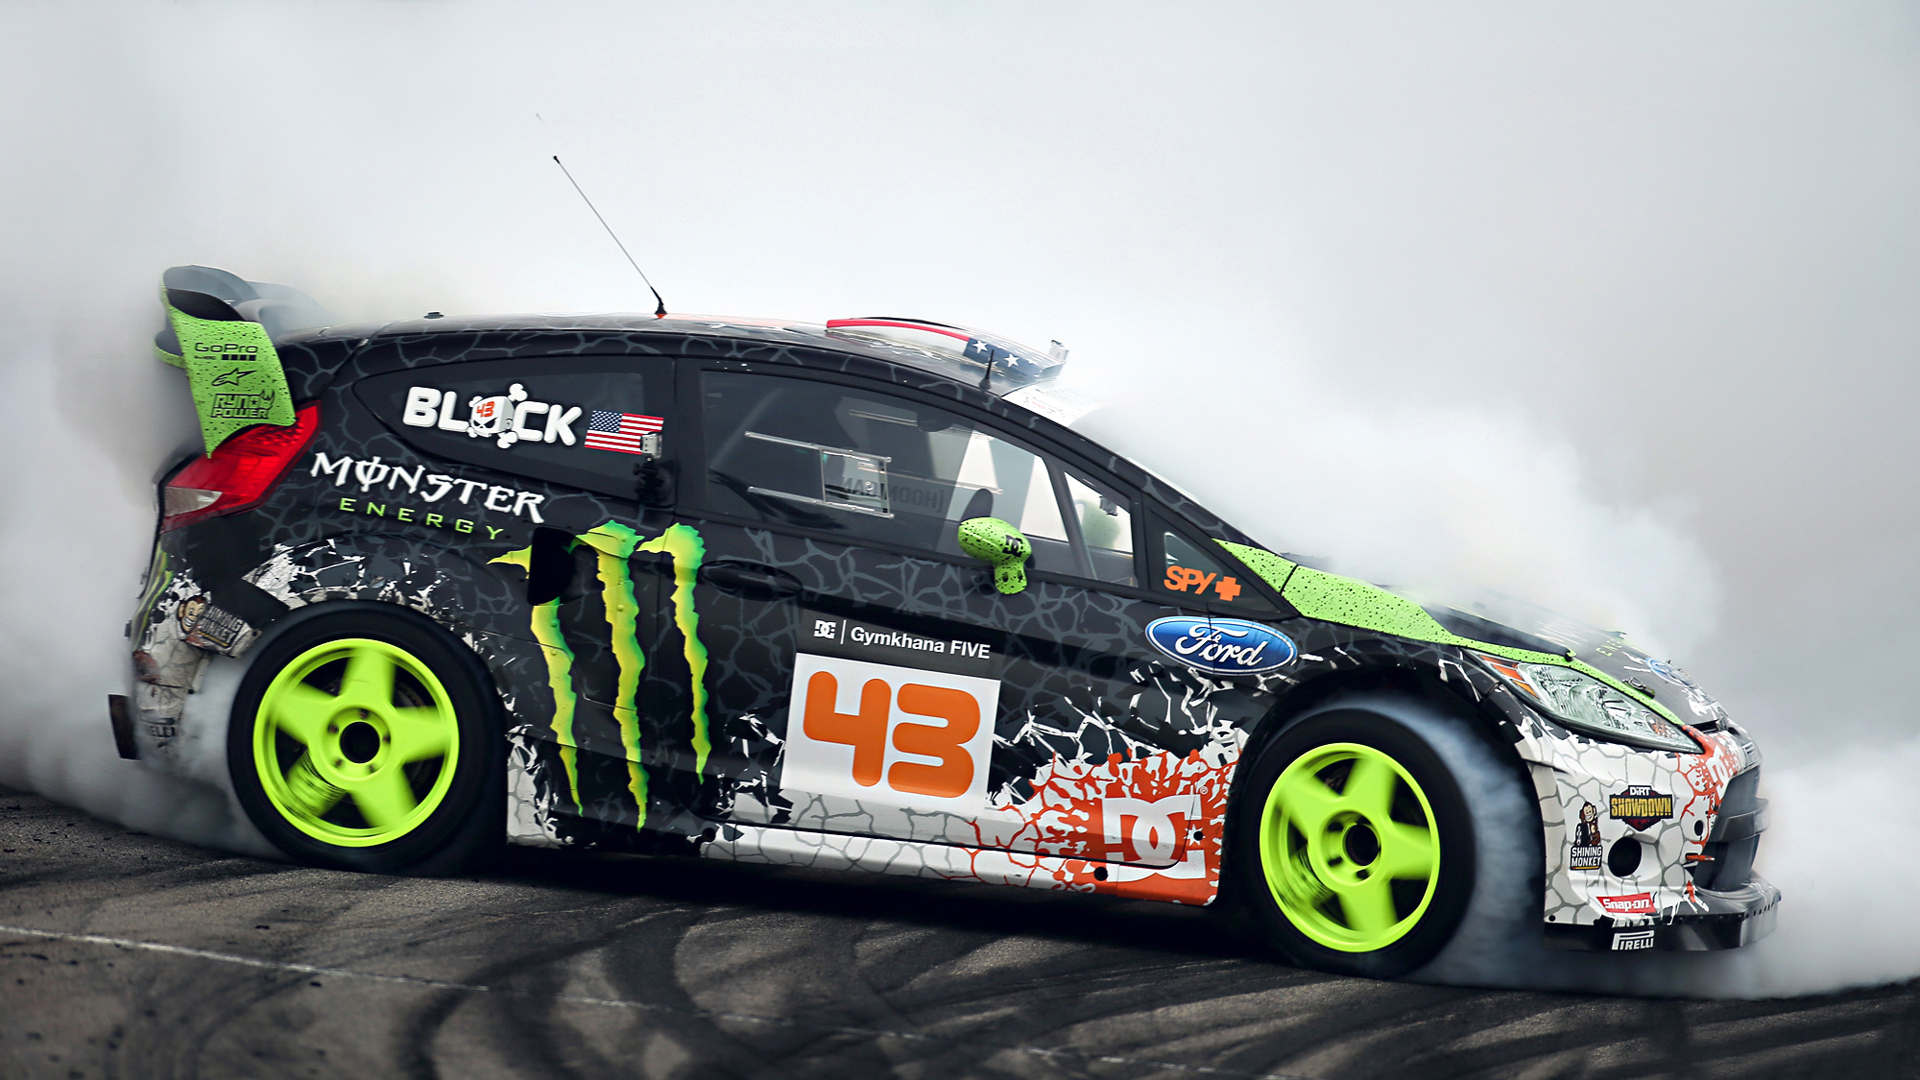 File Name 836454 Ken Block Pictures High Quality Wallpaper 836454 1920x1080